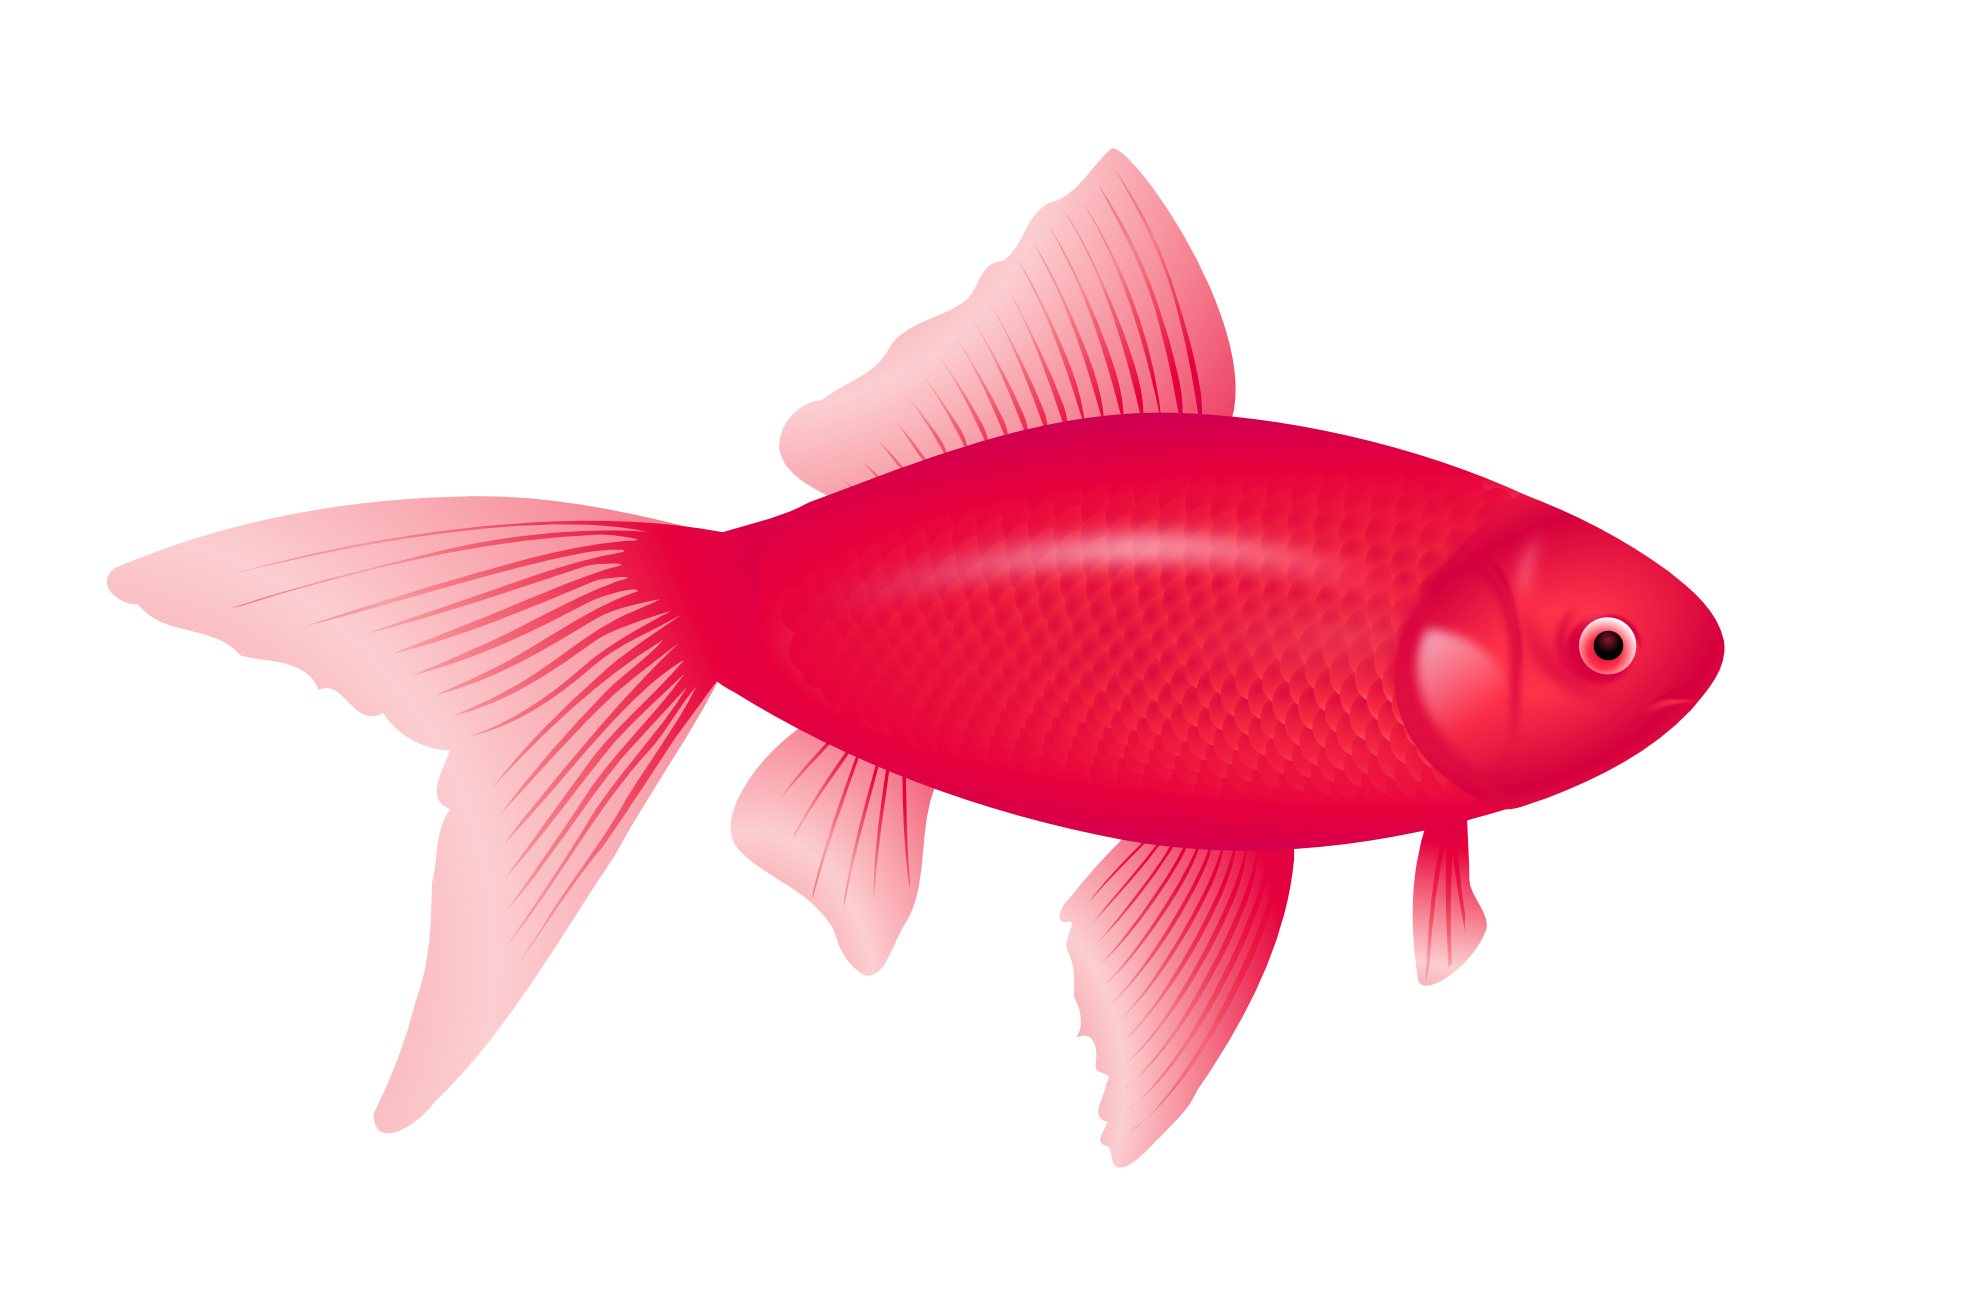 Red fish clipart image black and white stock One Fish, Two Fish, Red Fish, Blue Fish Clip art - purple fish PNG ... image black and white stock